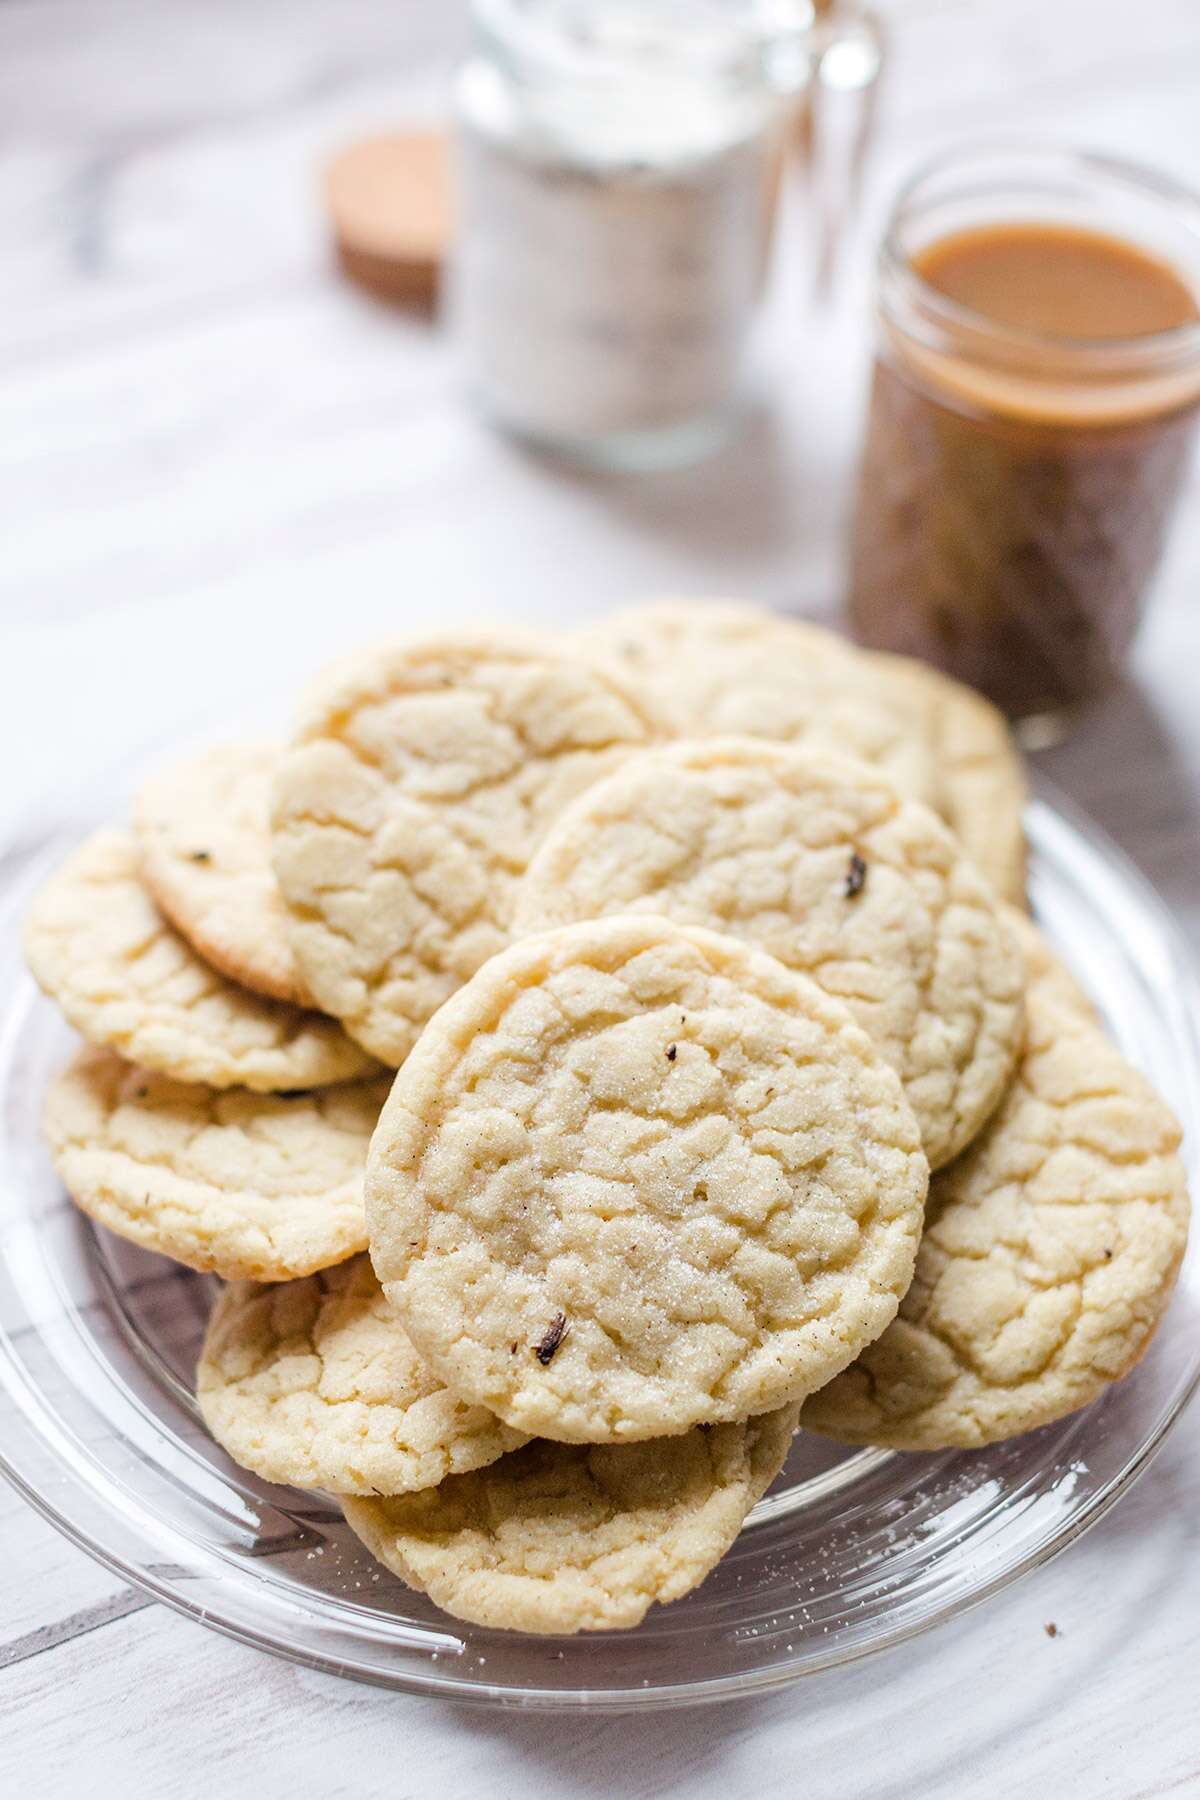 A plate of vanilla bean sugar cookies next to a cup of coffee and a jar of vanilla sugar